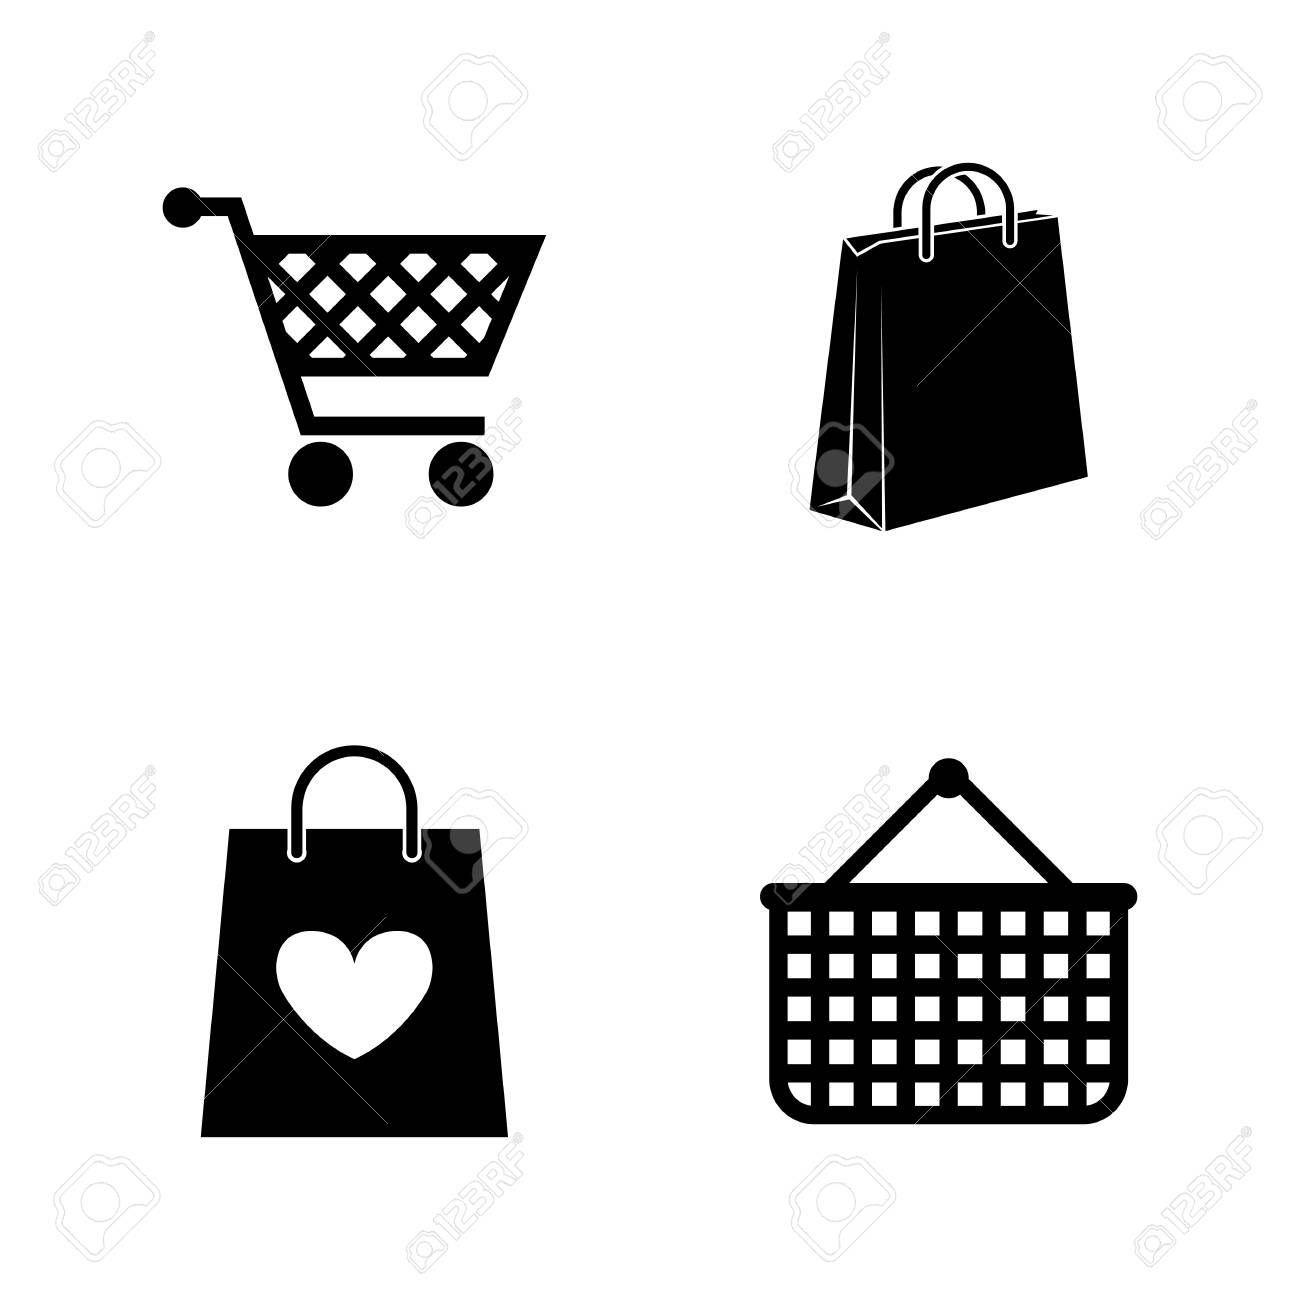 Shopping Bag Simple Related Vector Icons Set For Video Mobile Apps